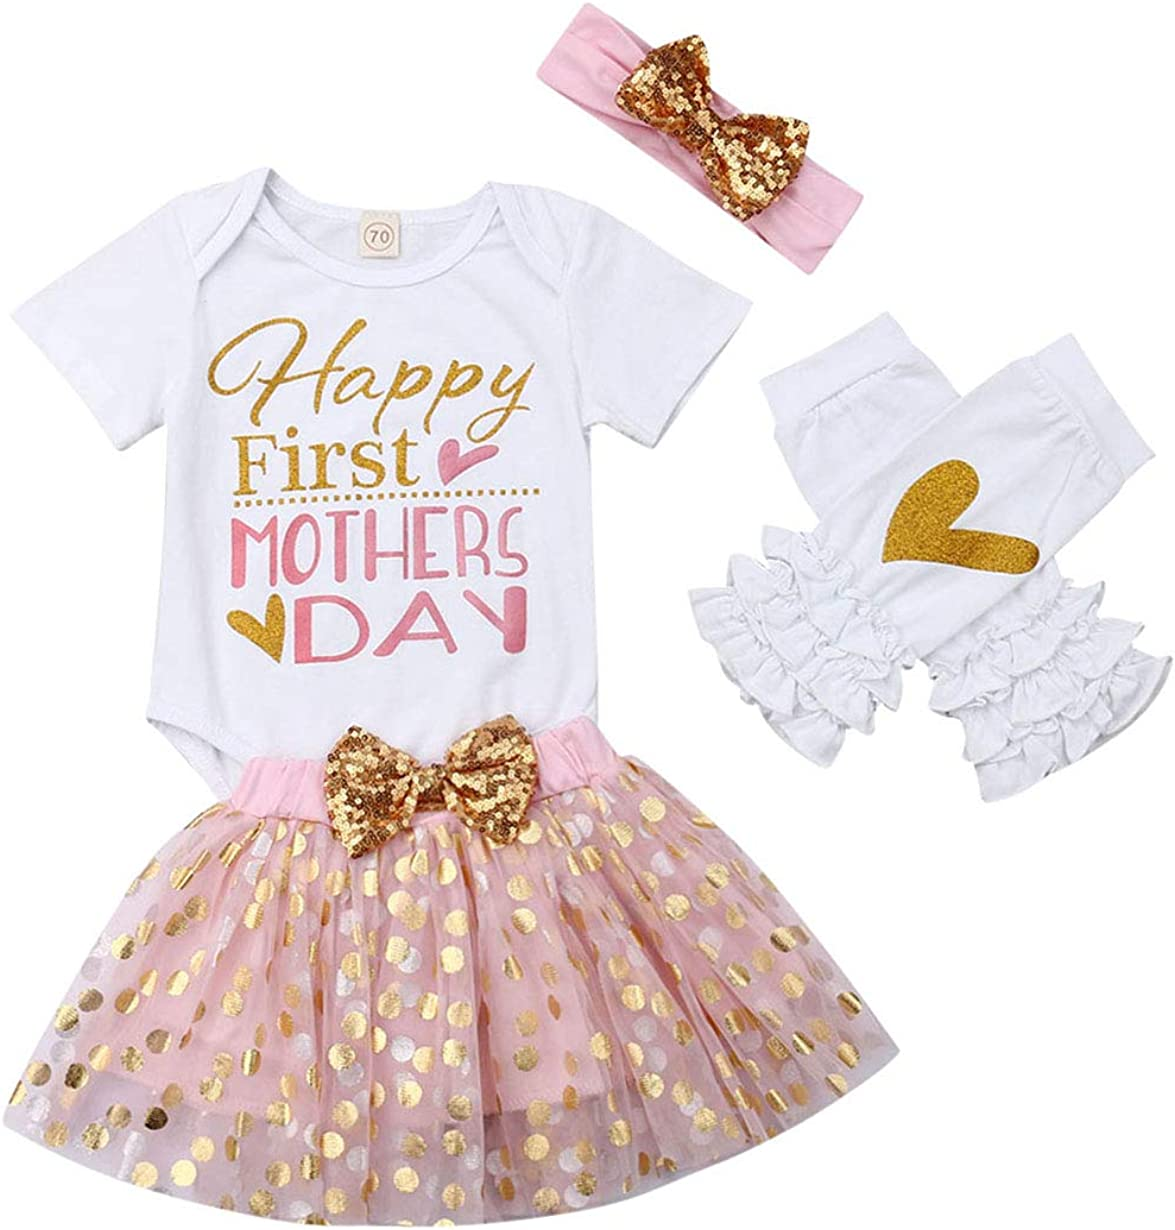 Dot Bubble Skirt Headbands Legging 4Pcs Sets FeMereina Newborn Infant Baby Girl Clothes Happy First Mothers Day Pattern Romper